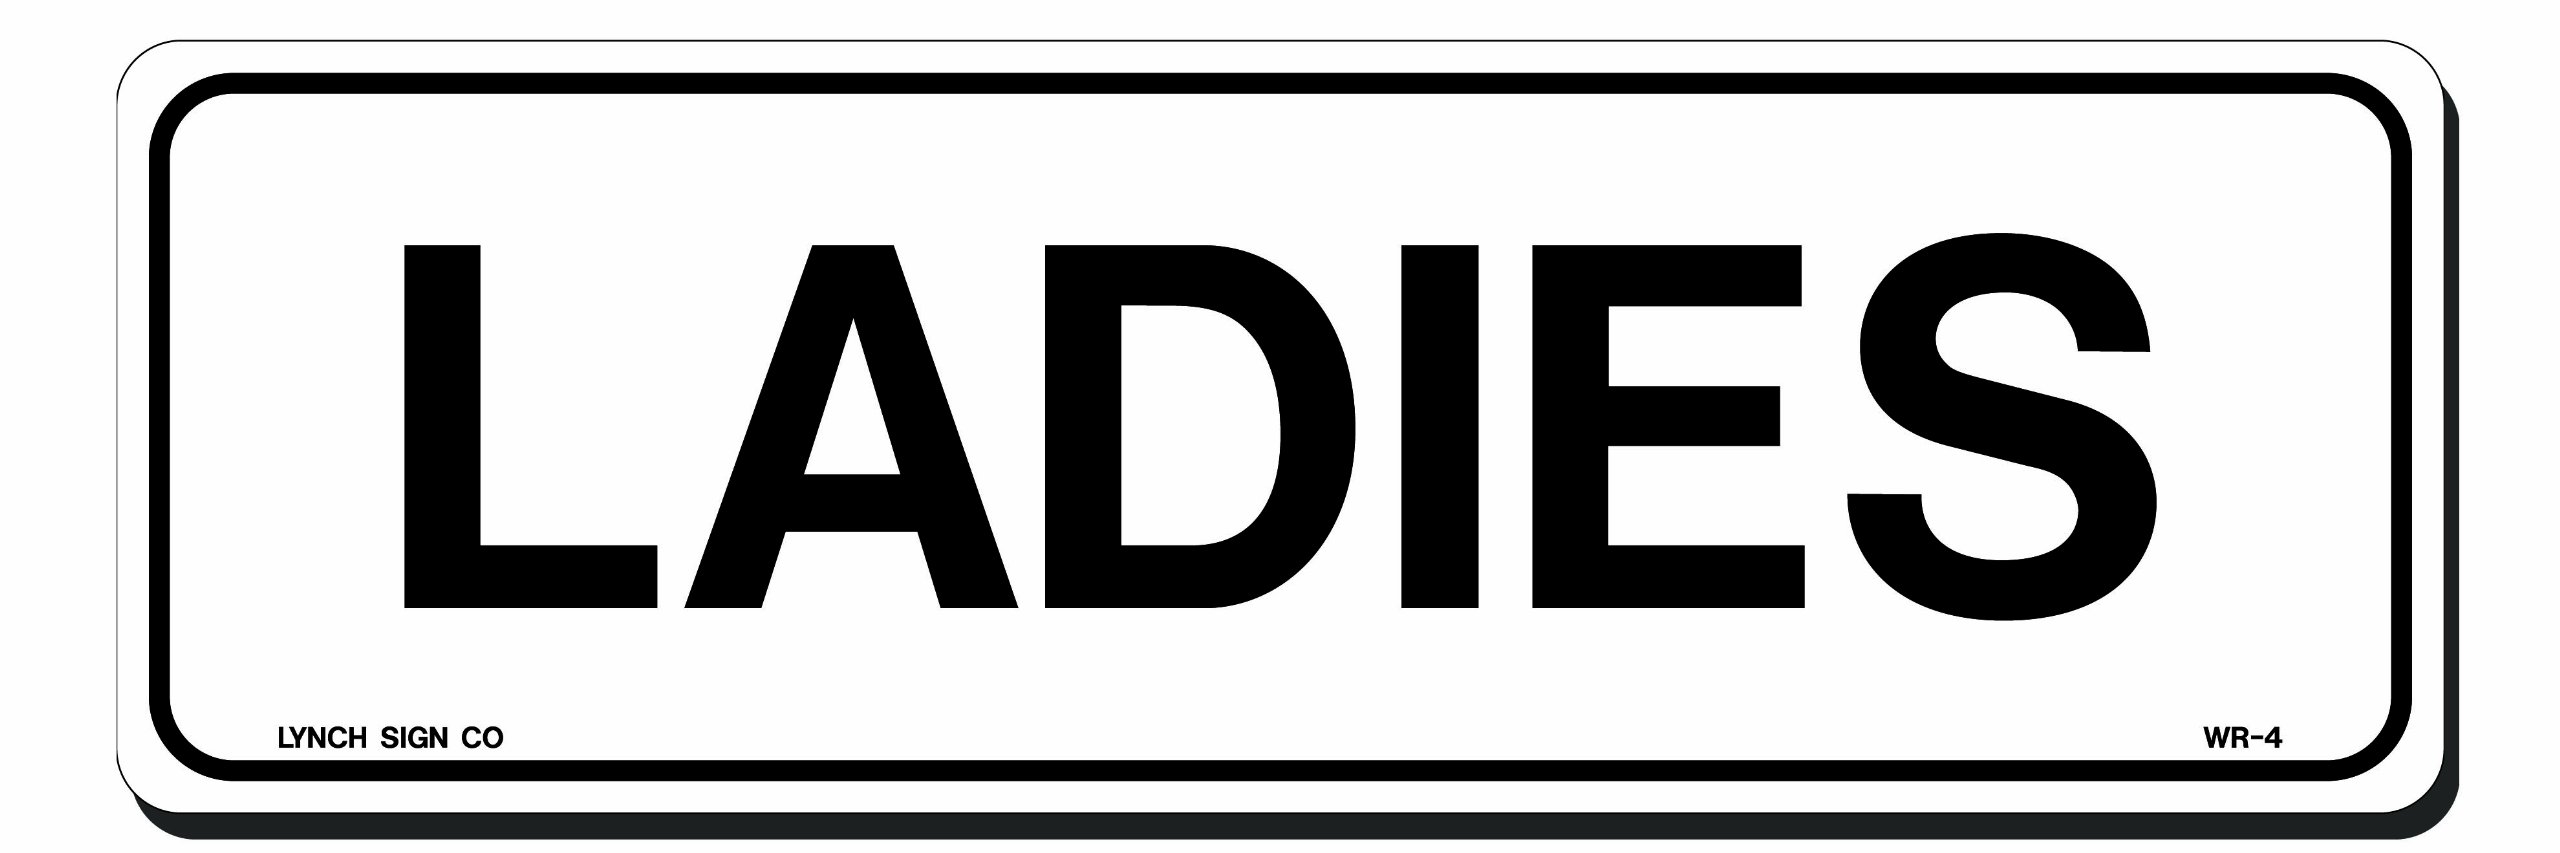 Lynch Signs 9 in. x 3 in. Sign Black on White Plastic Ladies